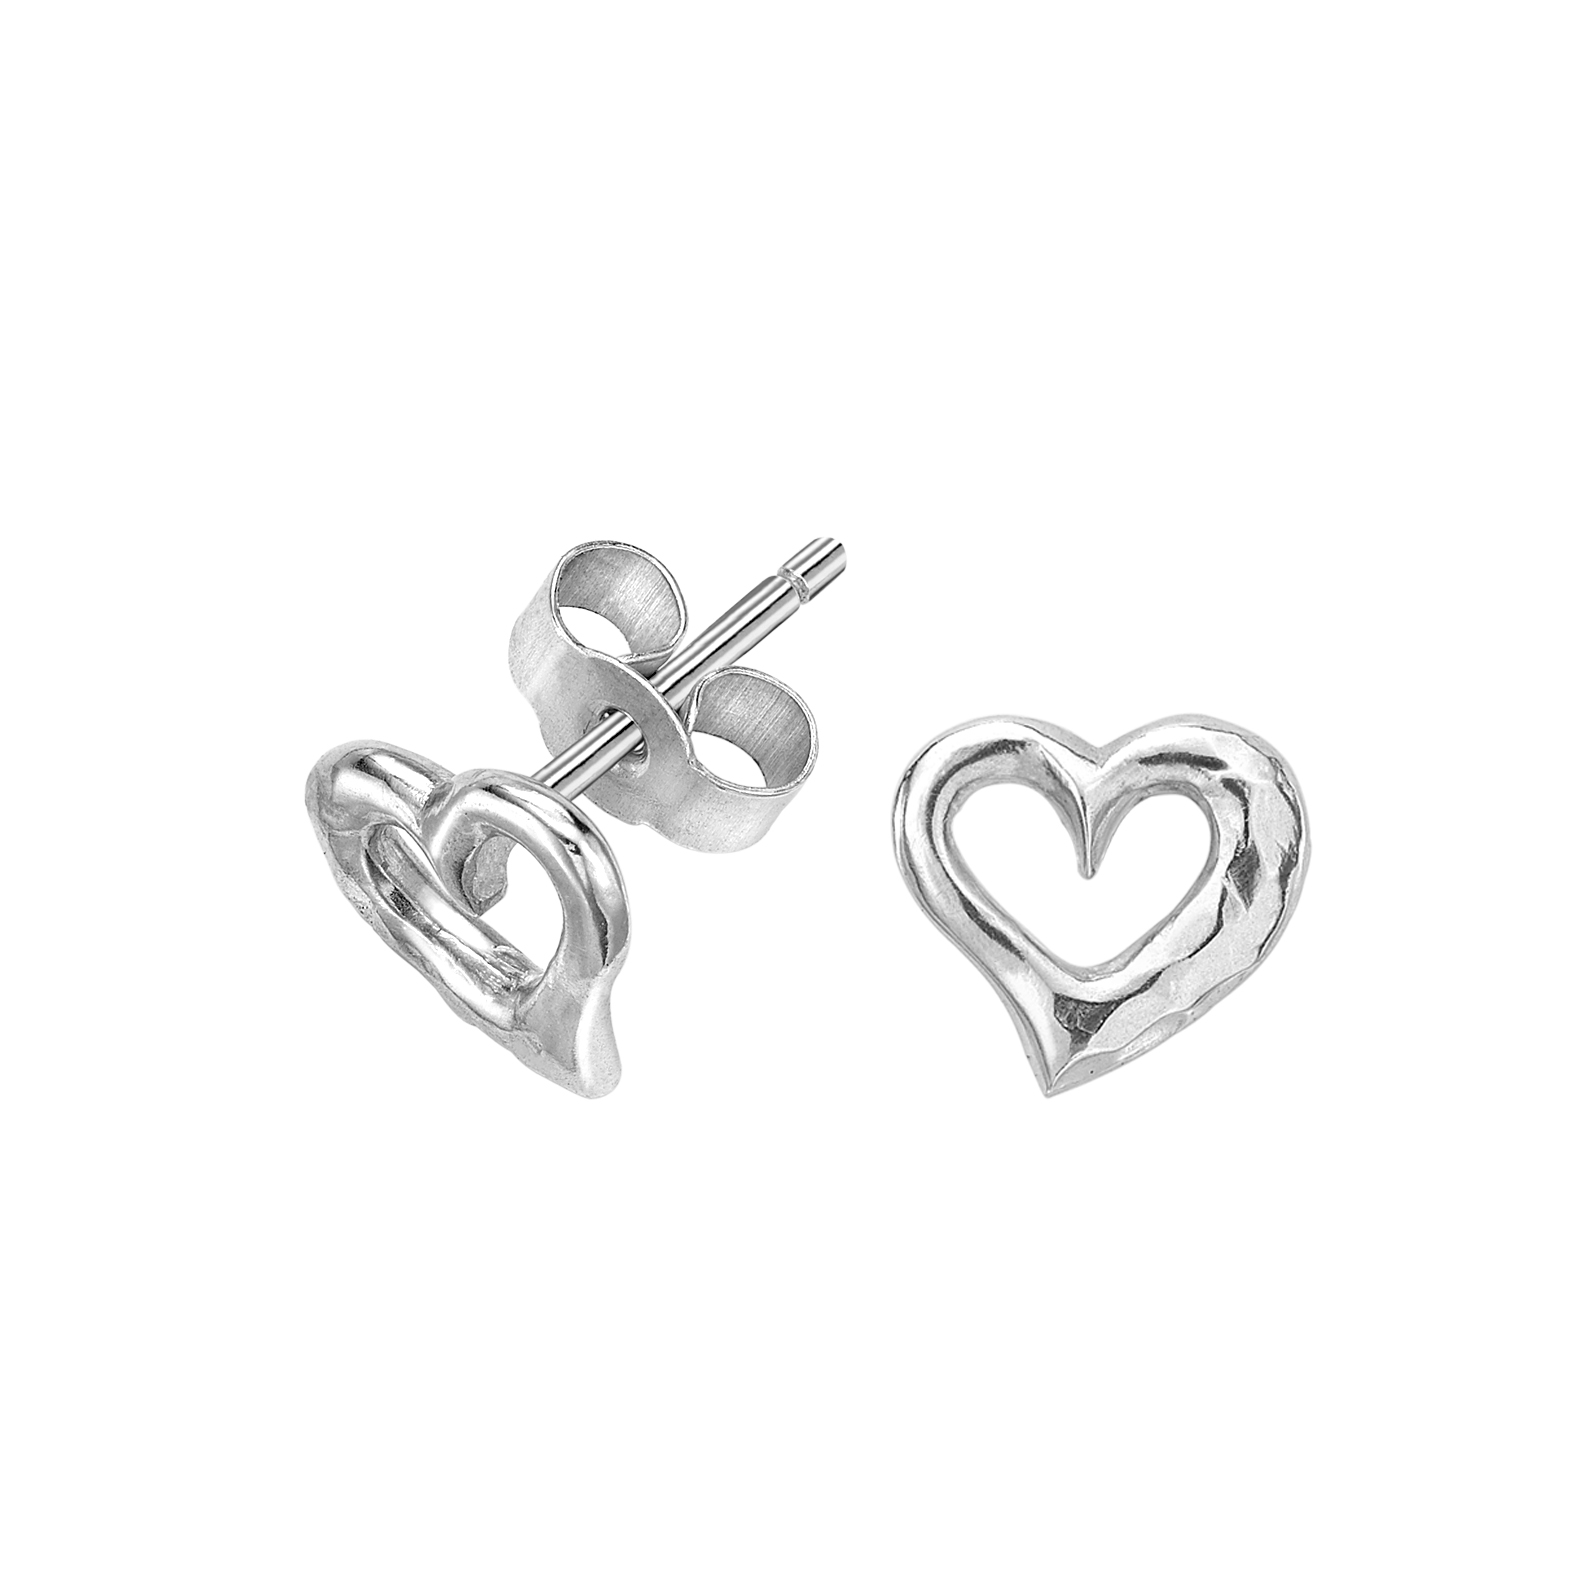 a9abe8668 This dainty design symbolising eternal love is just gorgeous, and the  slightly hammered look adds a little twist. Priced at £38 they are a lovely  design and ...